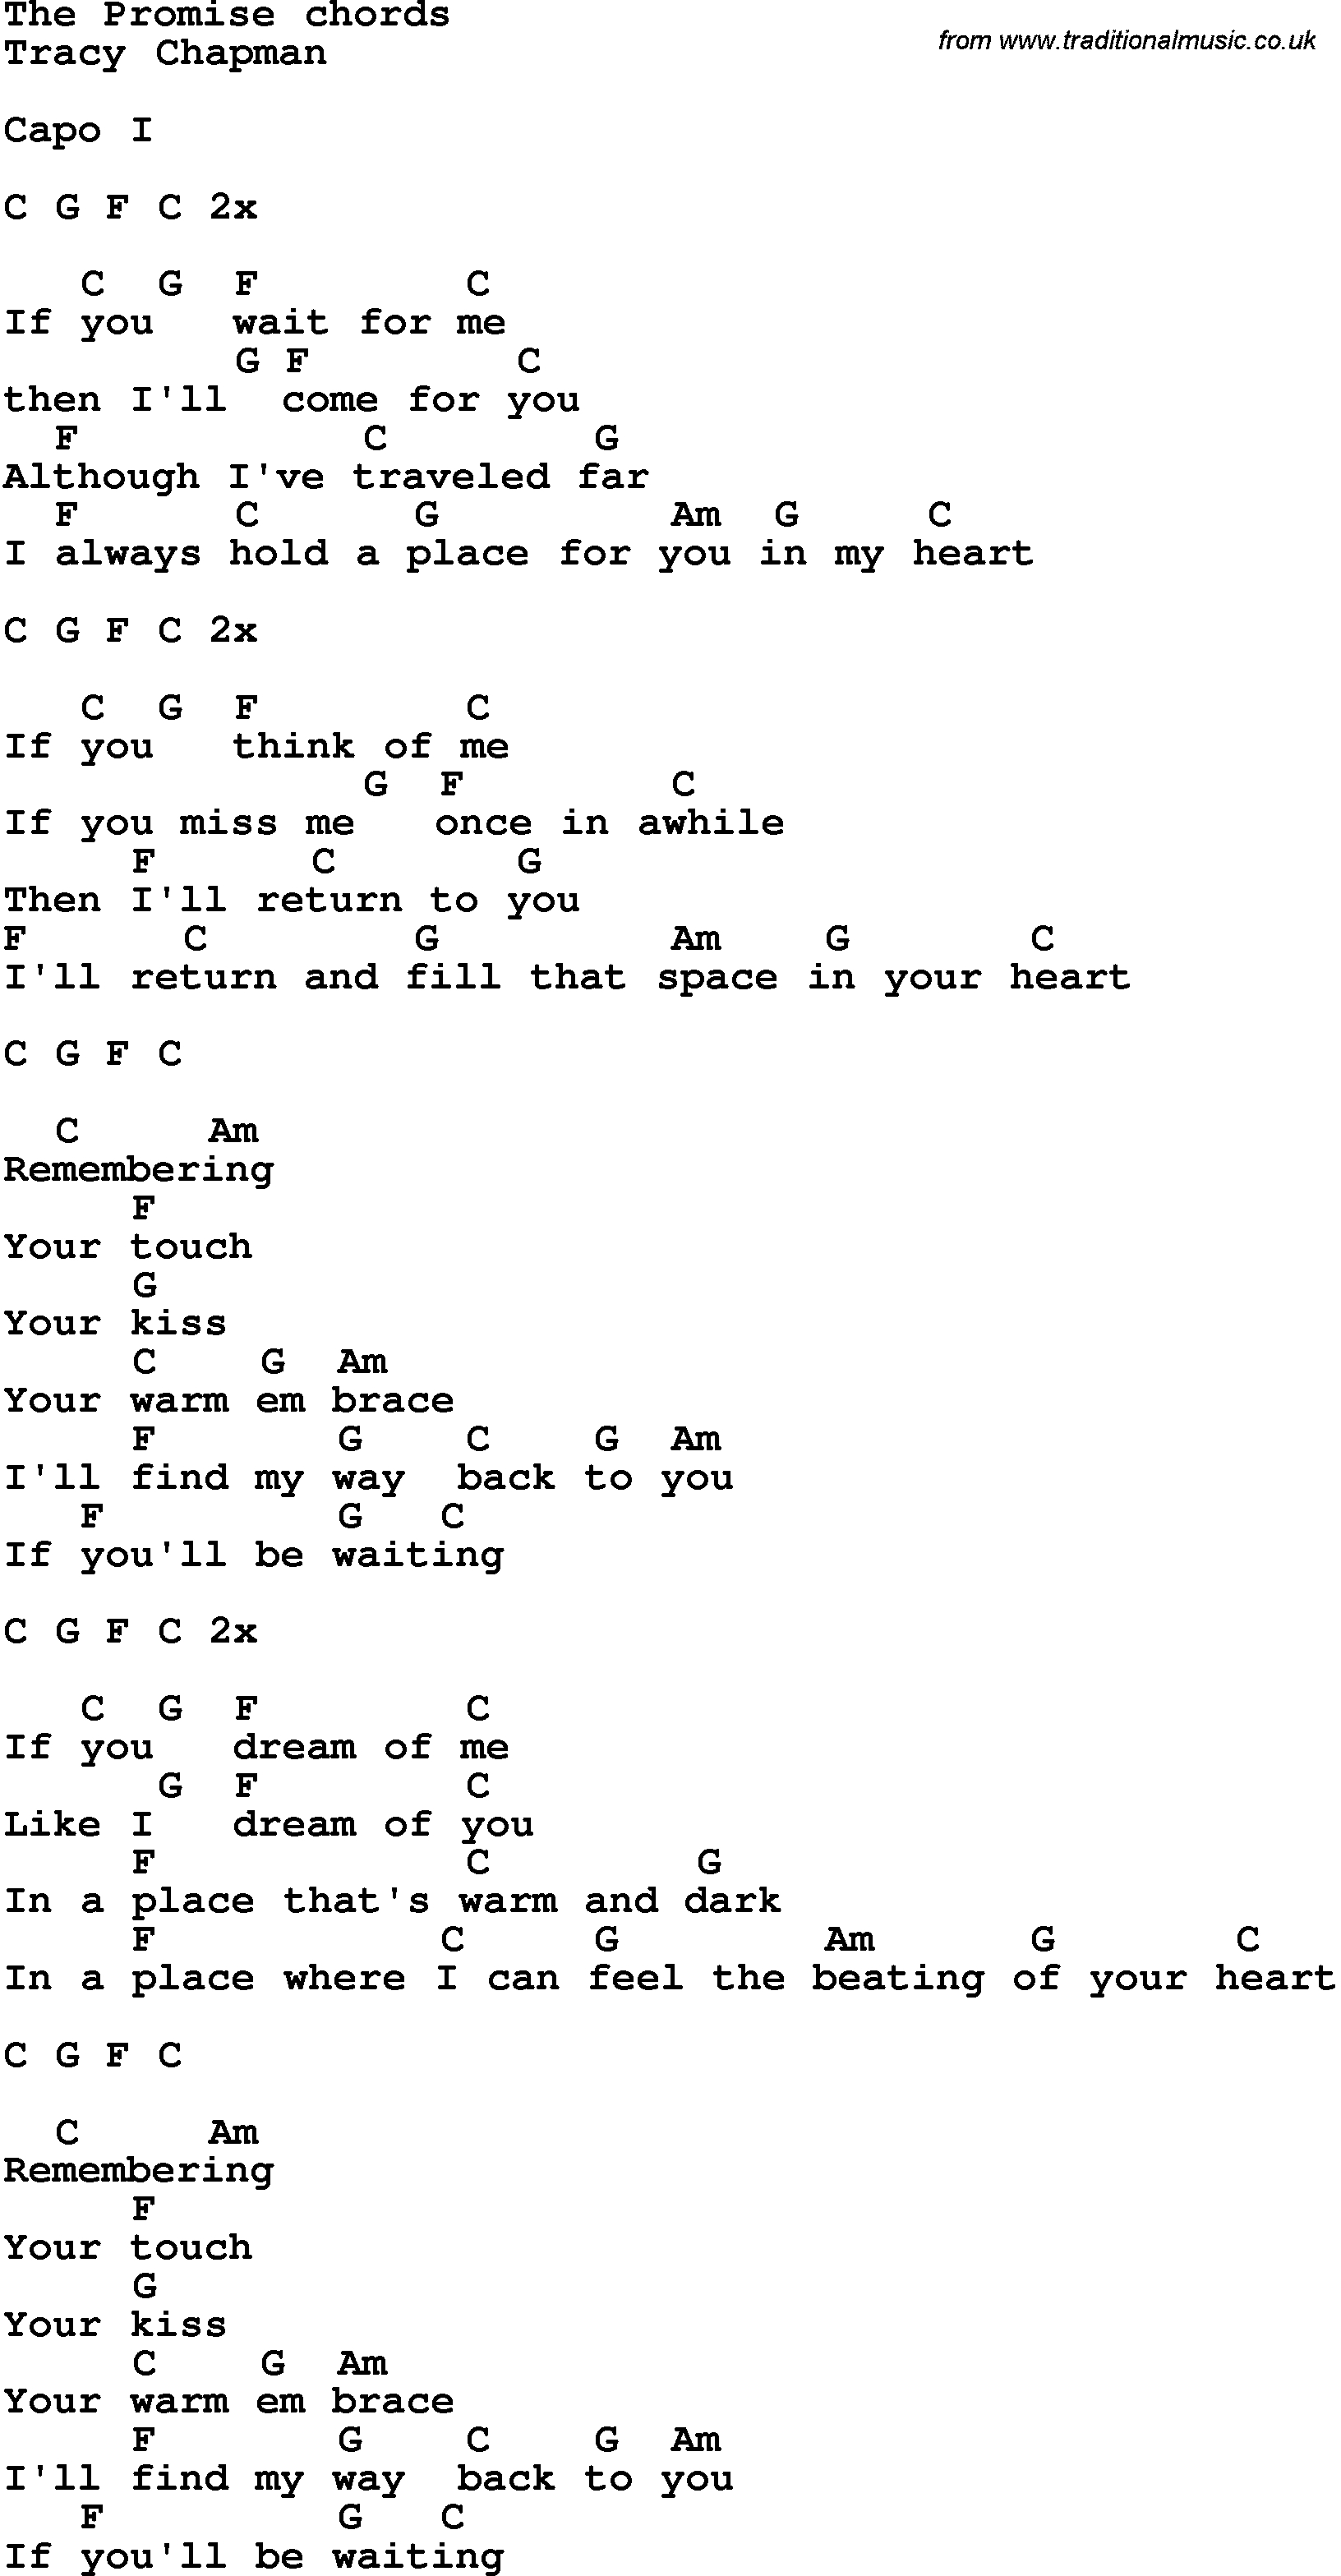 Song Lyrics With Guitar Chords For The Promise - Tracy Chapman - Free Printable Song Lyrics With Guitar Chords